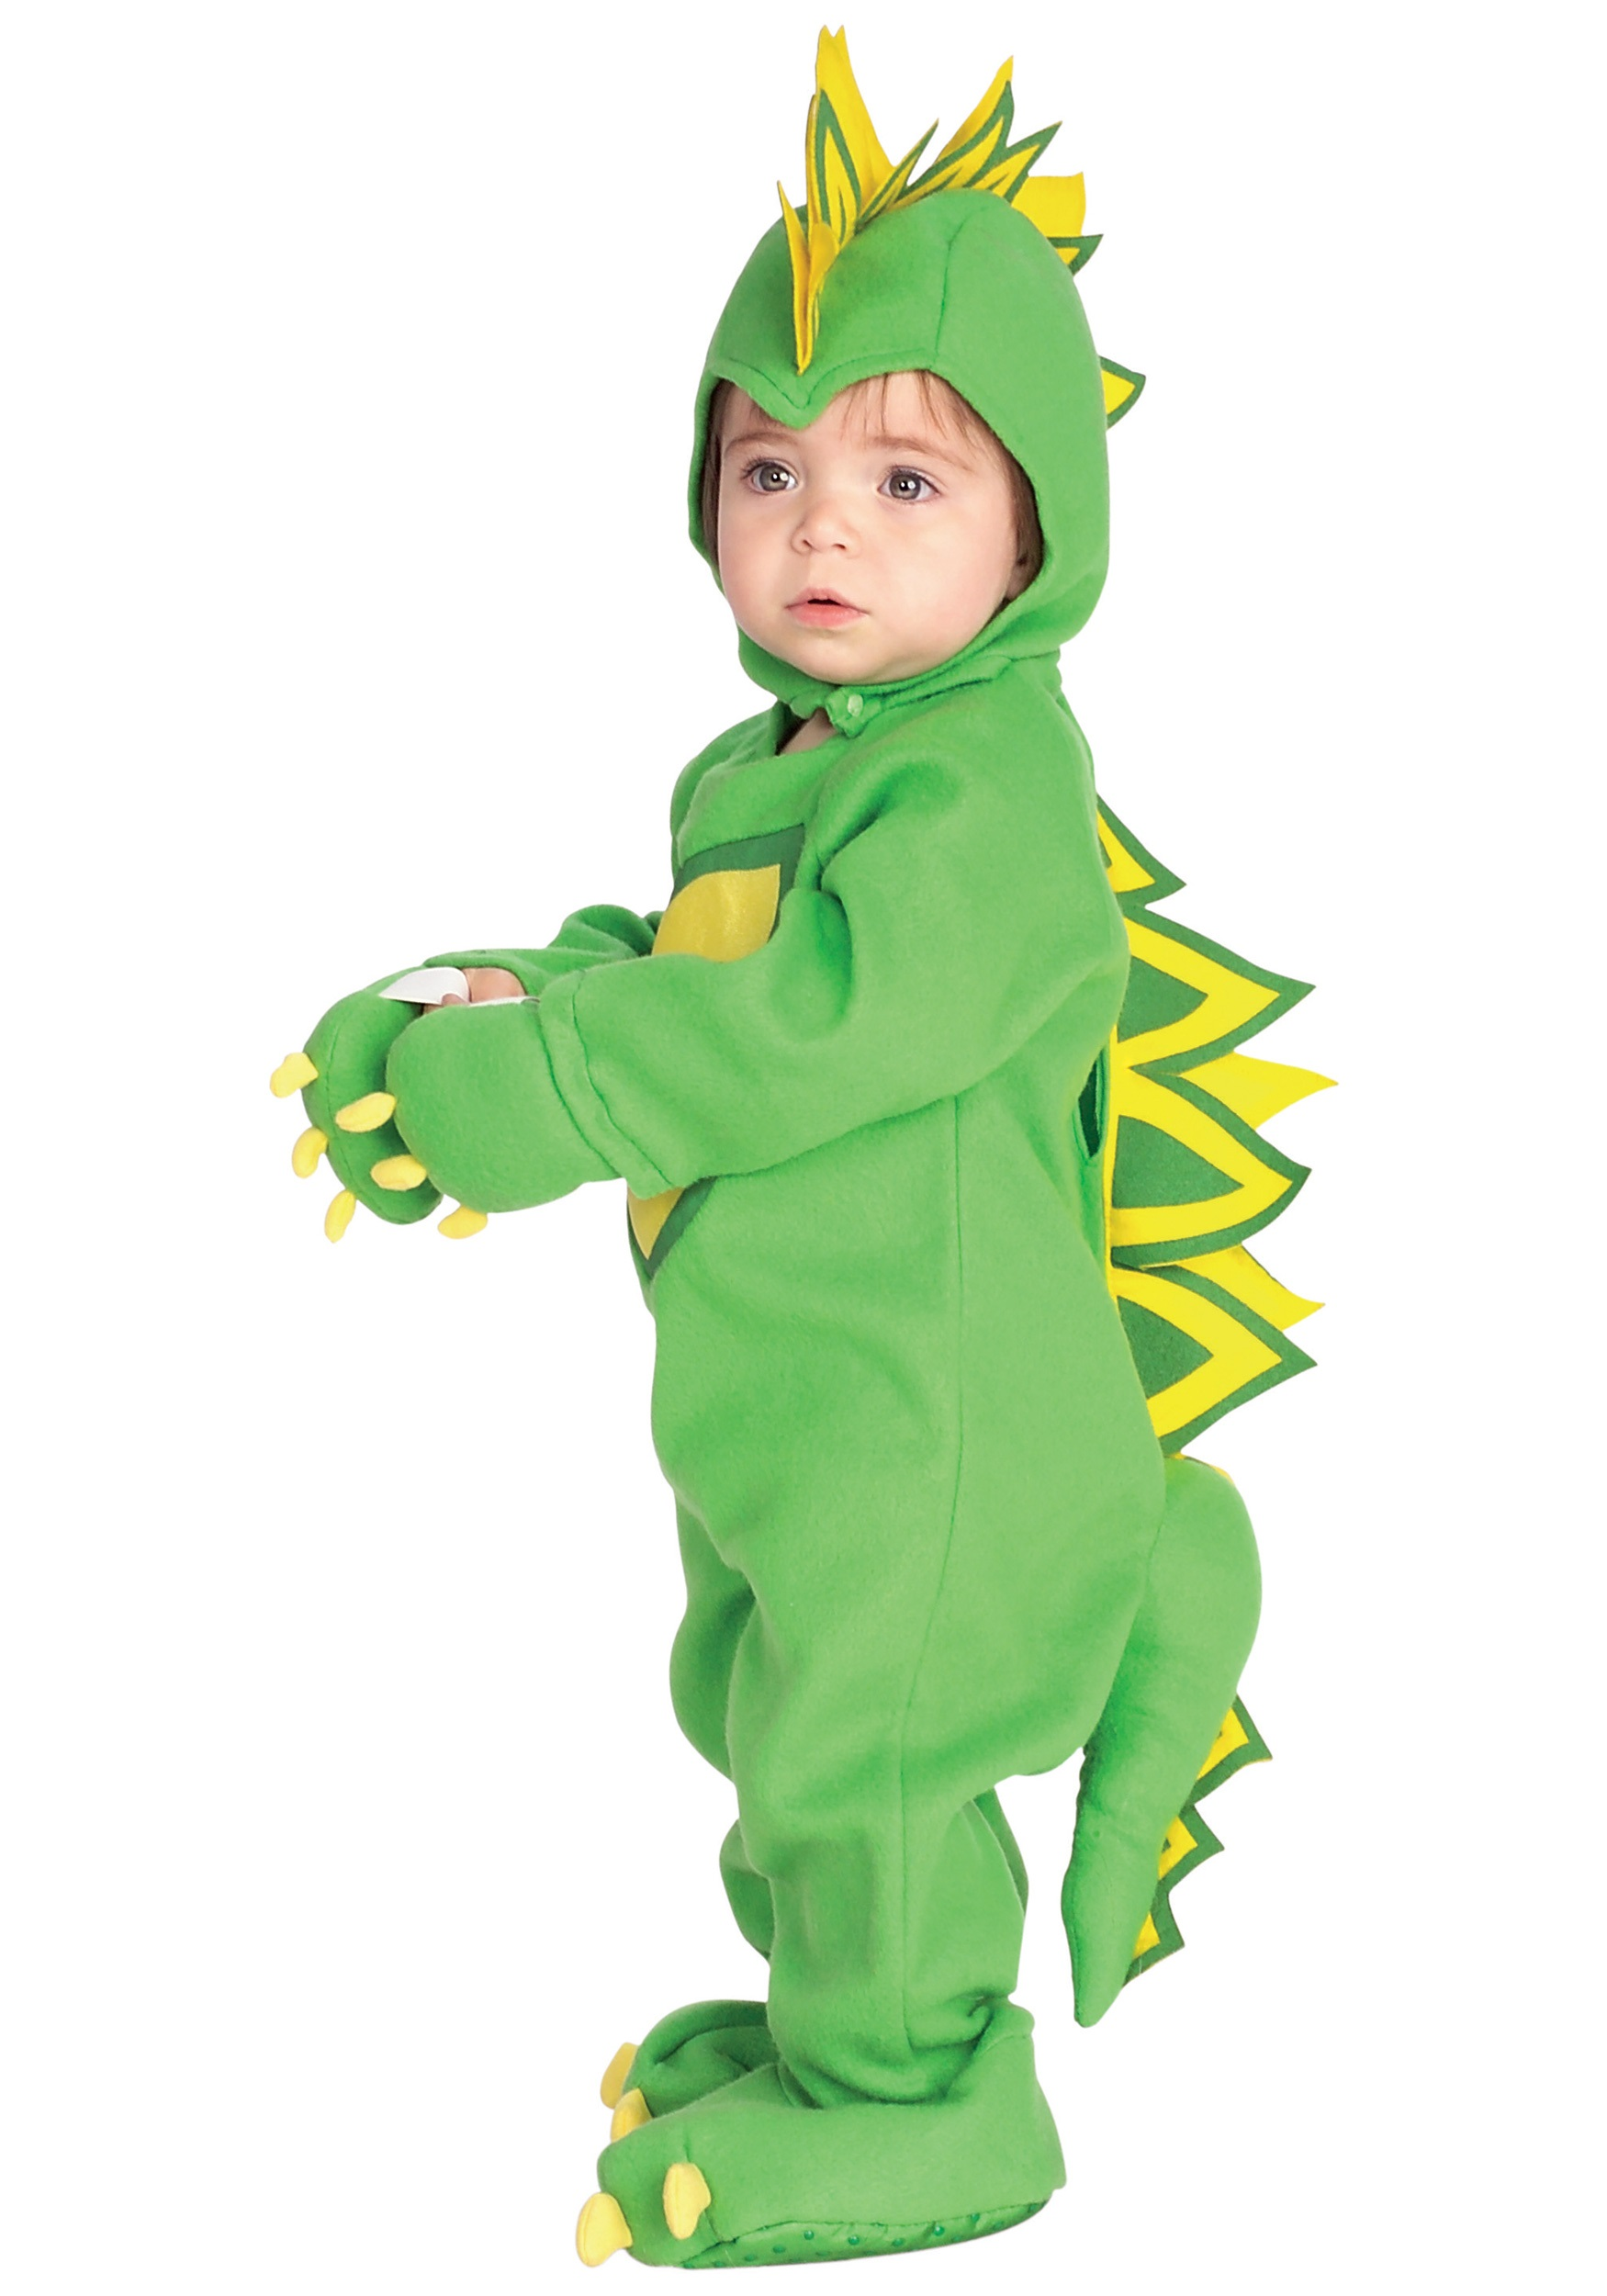 baby dragon dinosaur costume - halloween costume ideas 2018